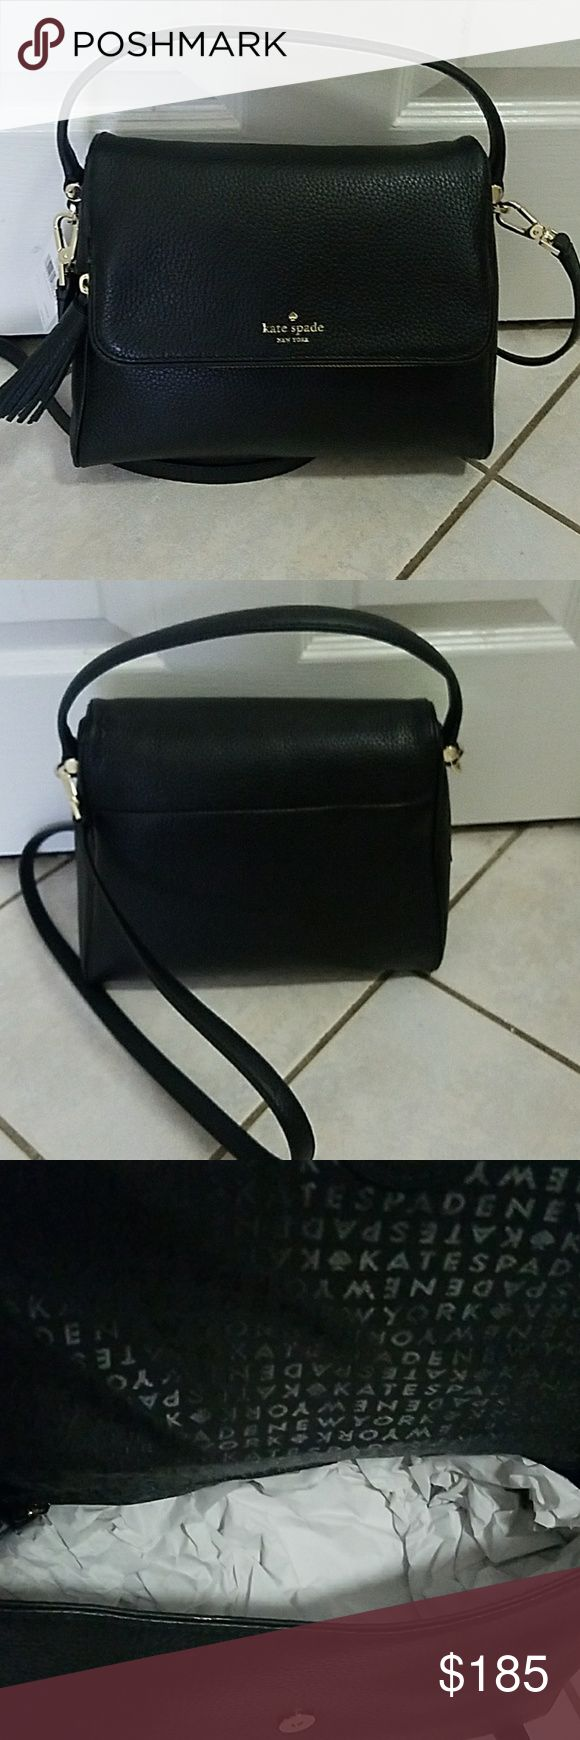 Kate Spade Miri Chester Street black satchel Brand new with tags cross body and satchel kate spade Bags Crossbody Bags